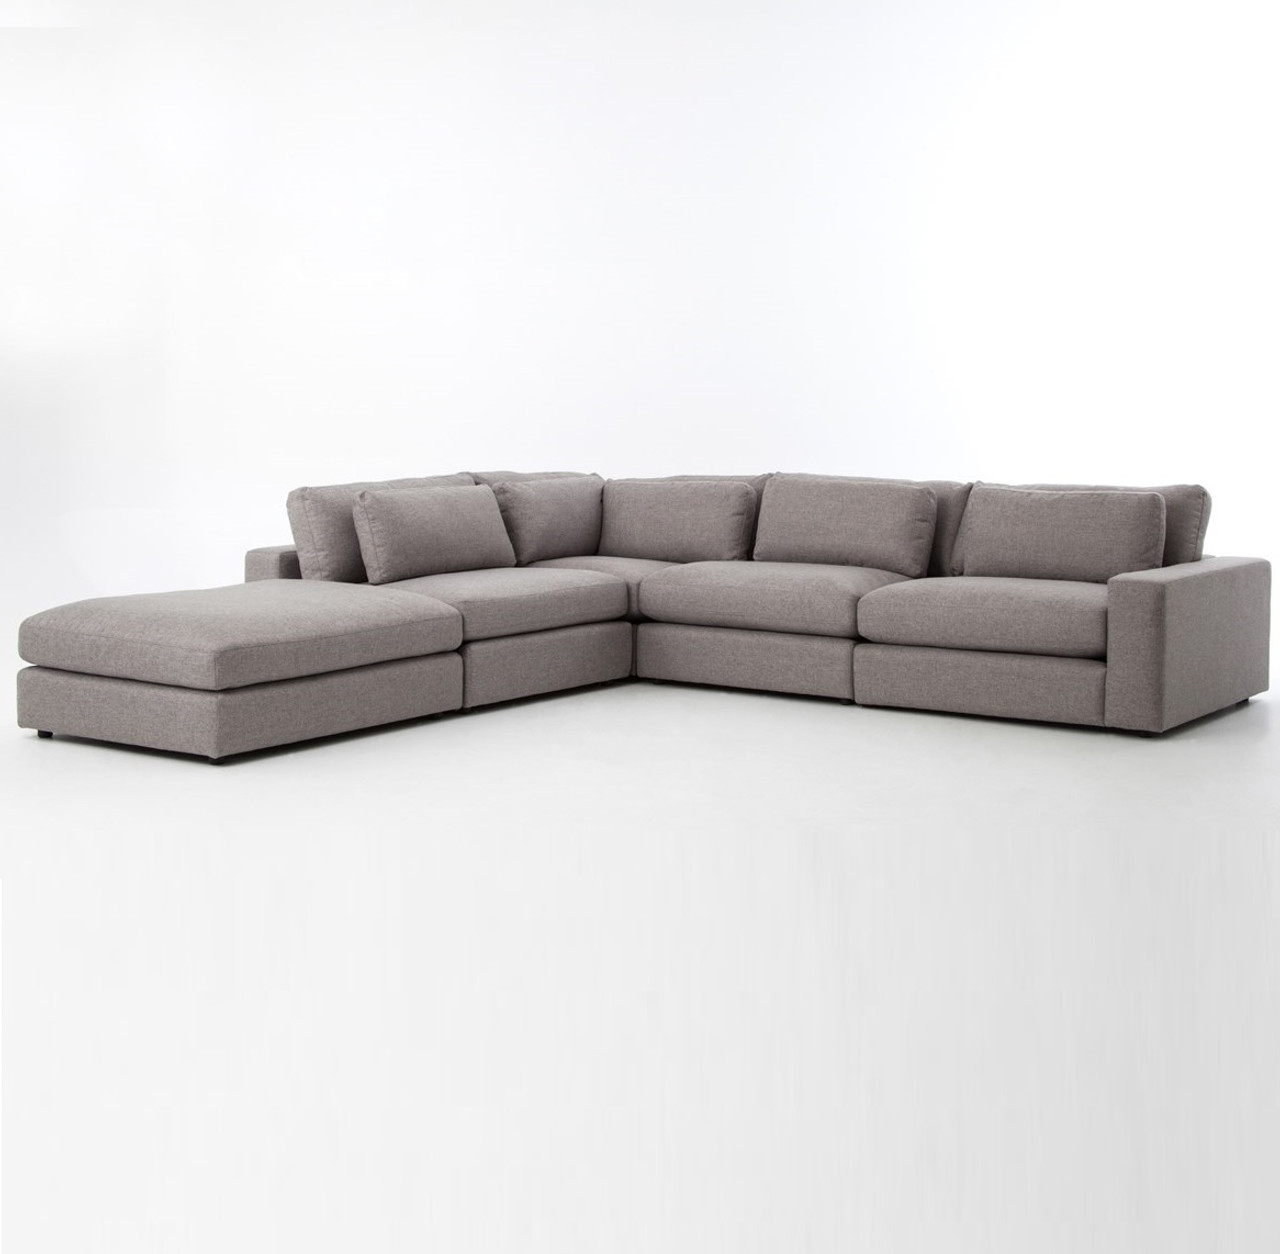 Low Price Modern Lamps Living Room Furniture 5 Seater Sofa: Bloor Gray Contemporary 5 Piece Corner Sectional Sofa